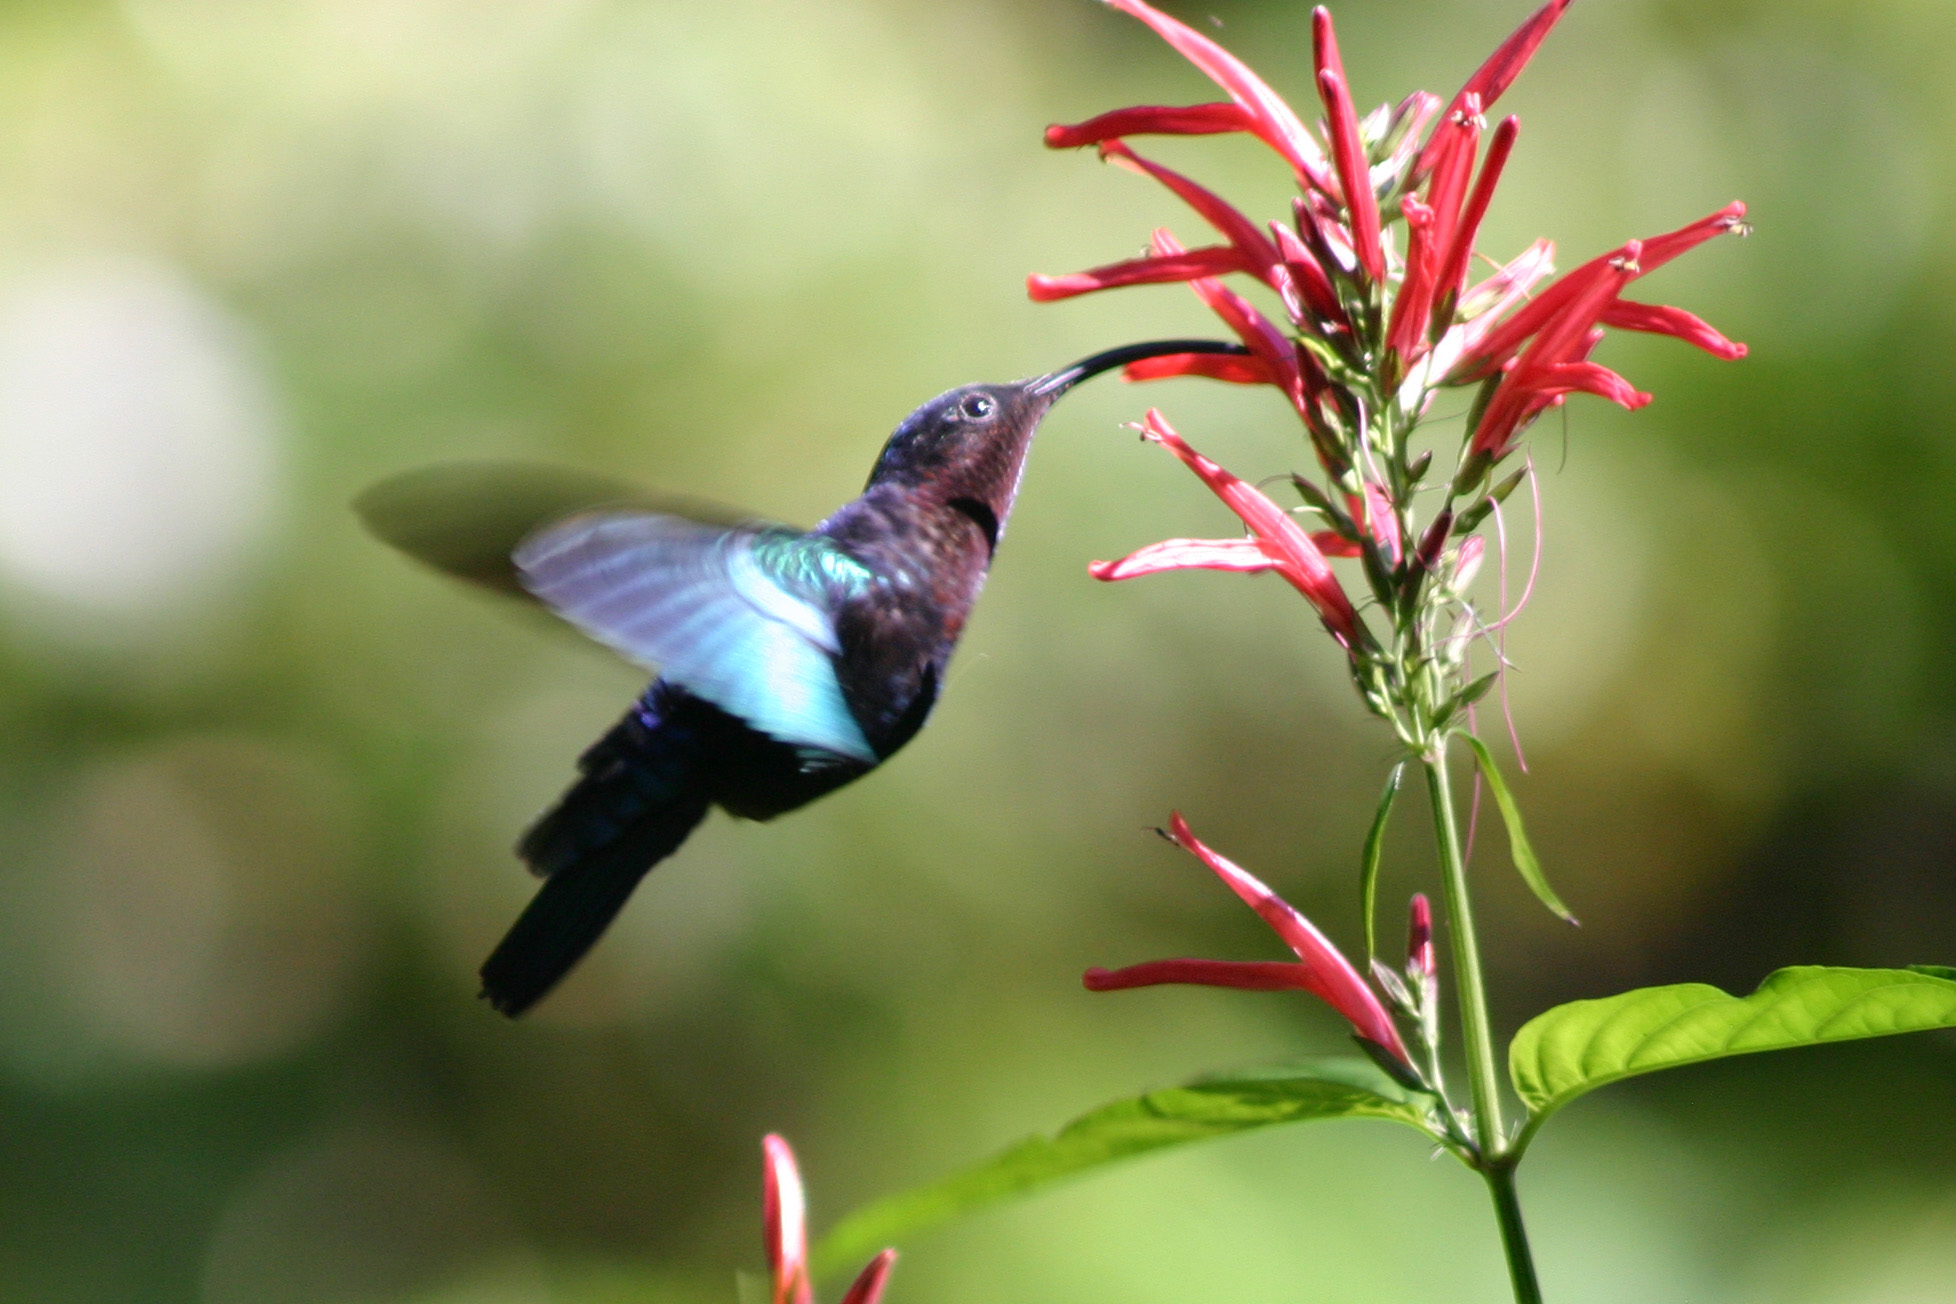 Magnificent Winter Ten Facts About Science Vibe Where Do Hummingbirds Sleep Nest Where Do Hummingbirds Sleep houzz-03 Where Do Hummingbirds Sleep